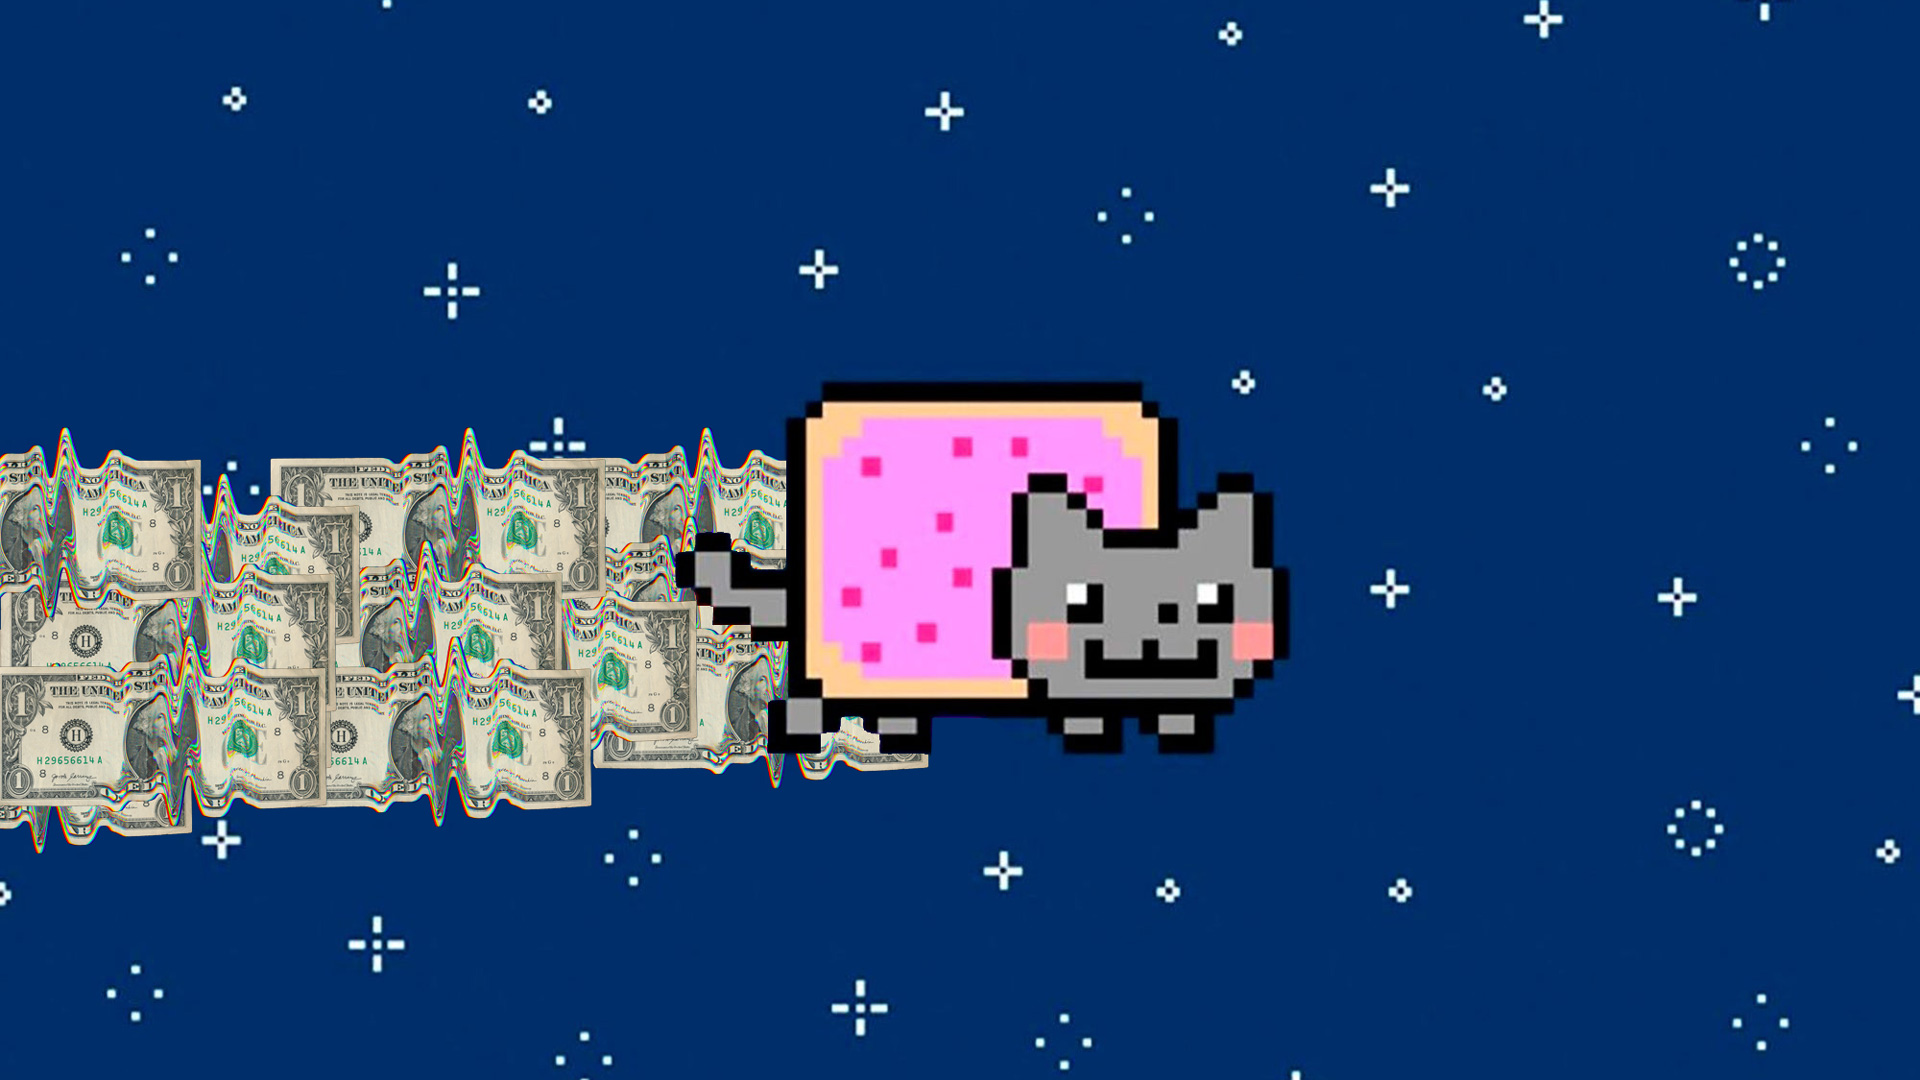 a cat with a poptart body and a trail of money behind it flying through a night sky